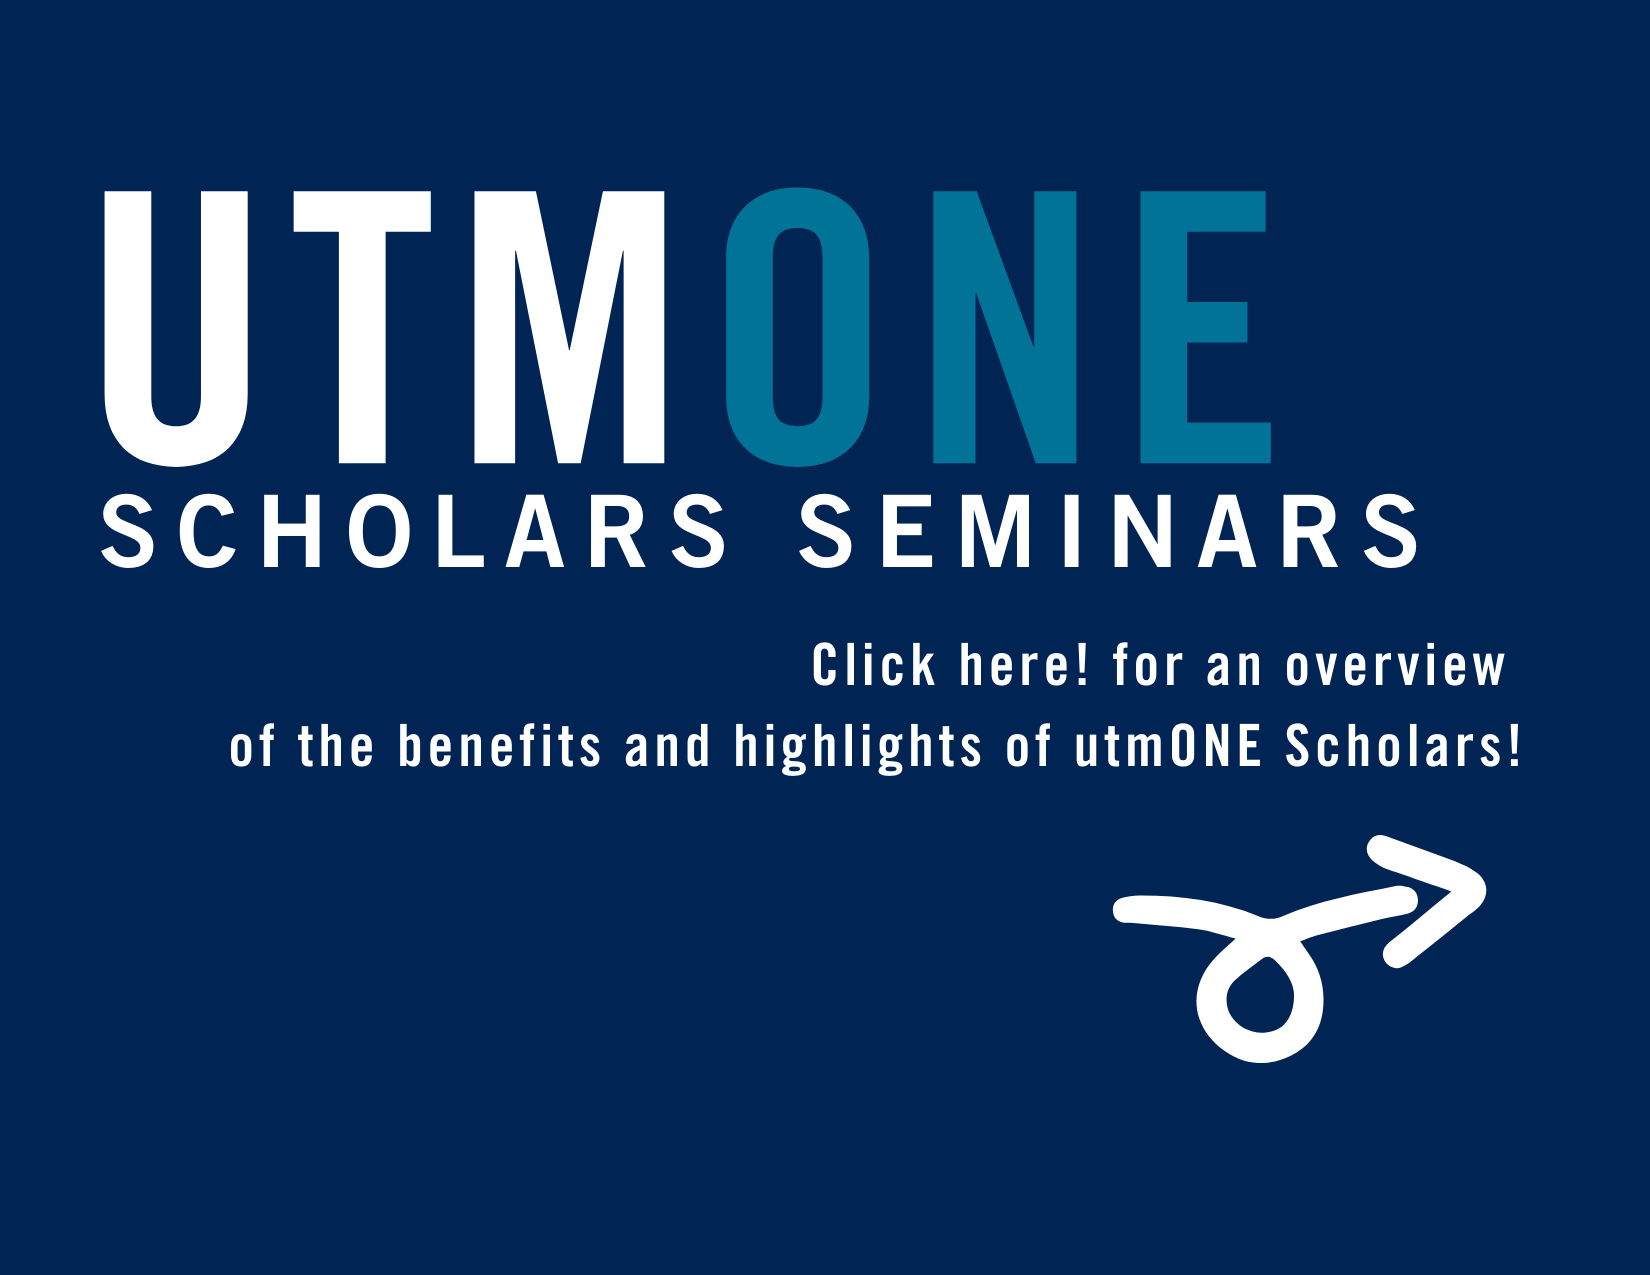 Click here for more information about the benefits of utmONE Scholars